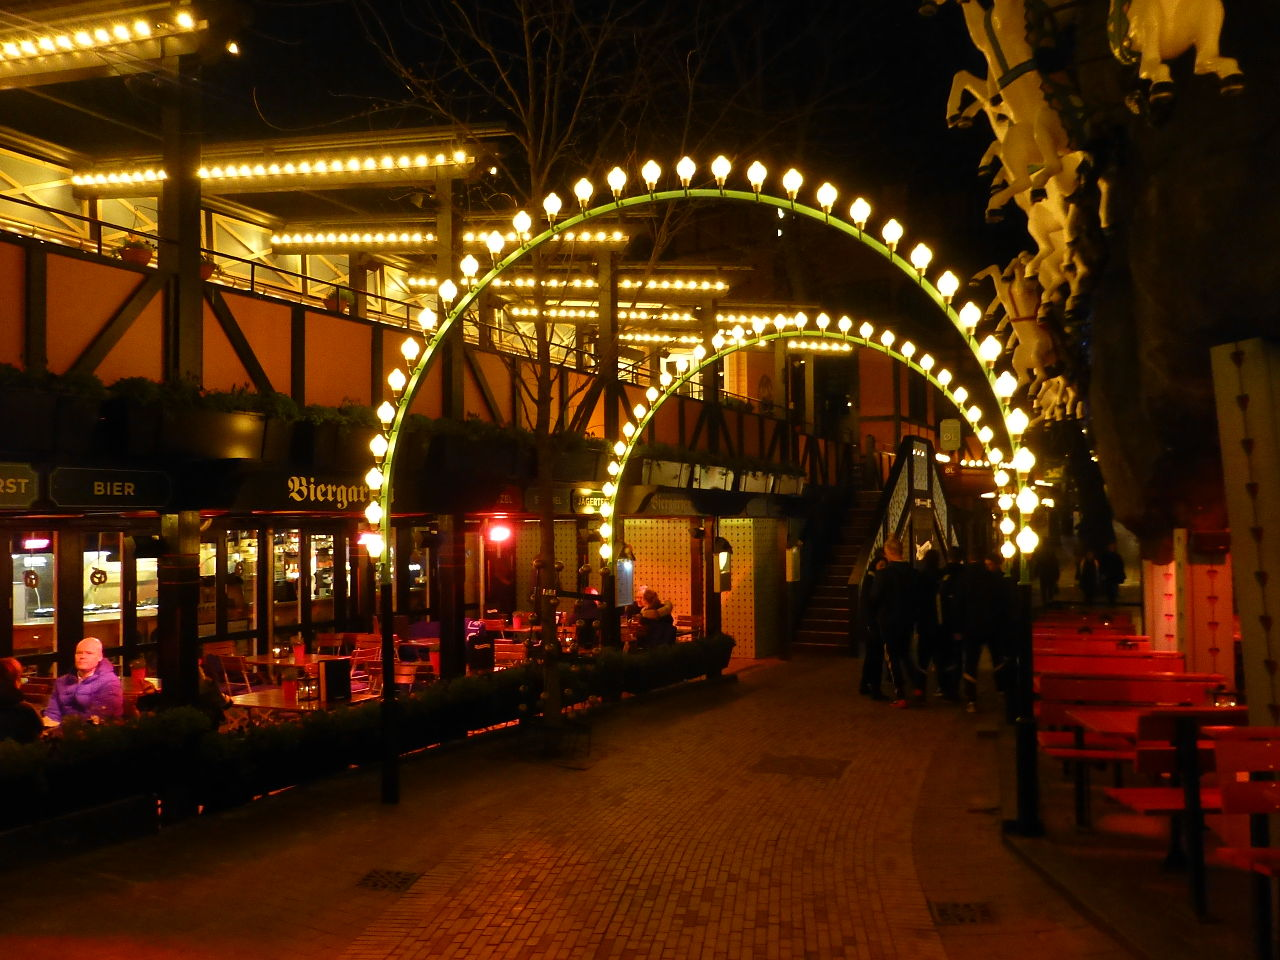 tivoli online dating Known for its unique combination of bike lanes and candle-lit cafés, tivoli gardens and glass-buildings, gastronomic experiences and striking sea-side, copenhagen has a.